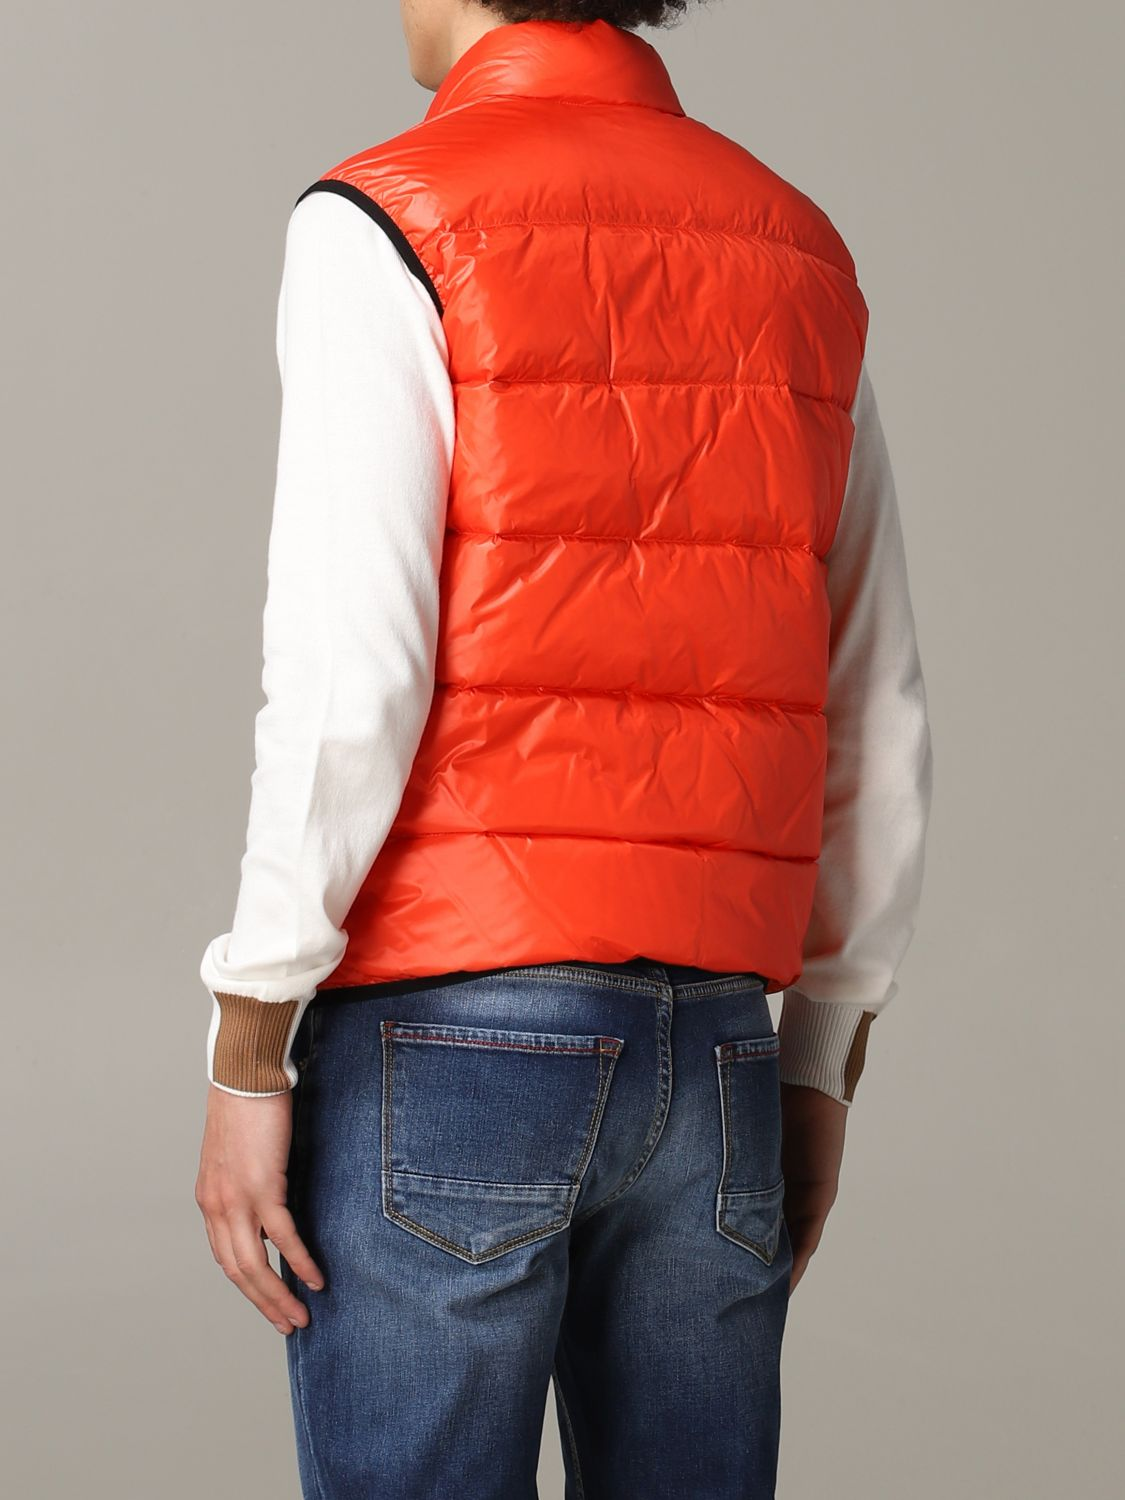 Suit vest Blauer: Suit vest men Blauer orange 3